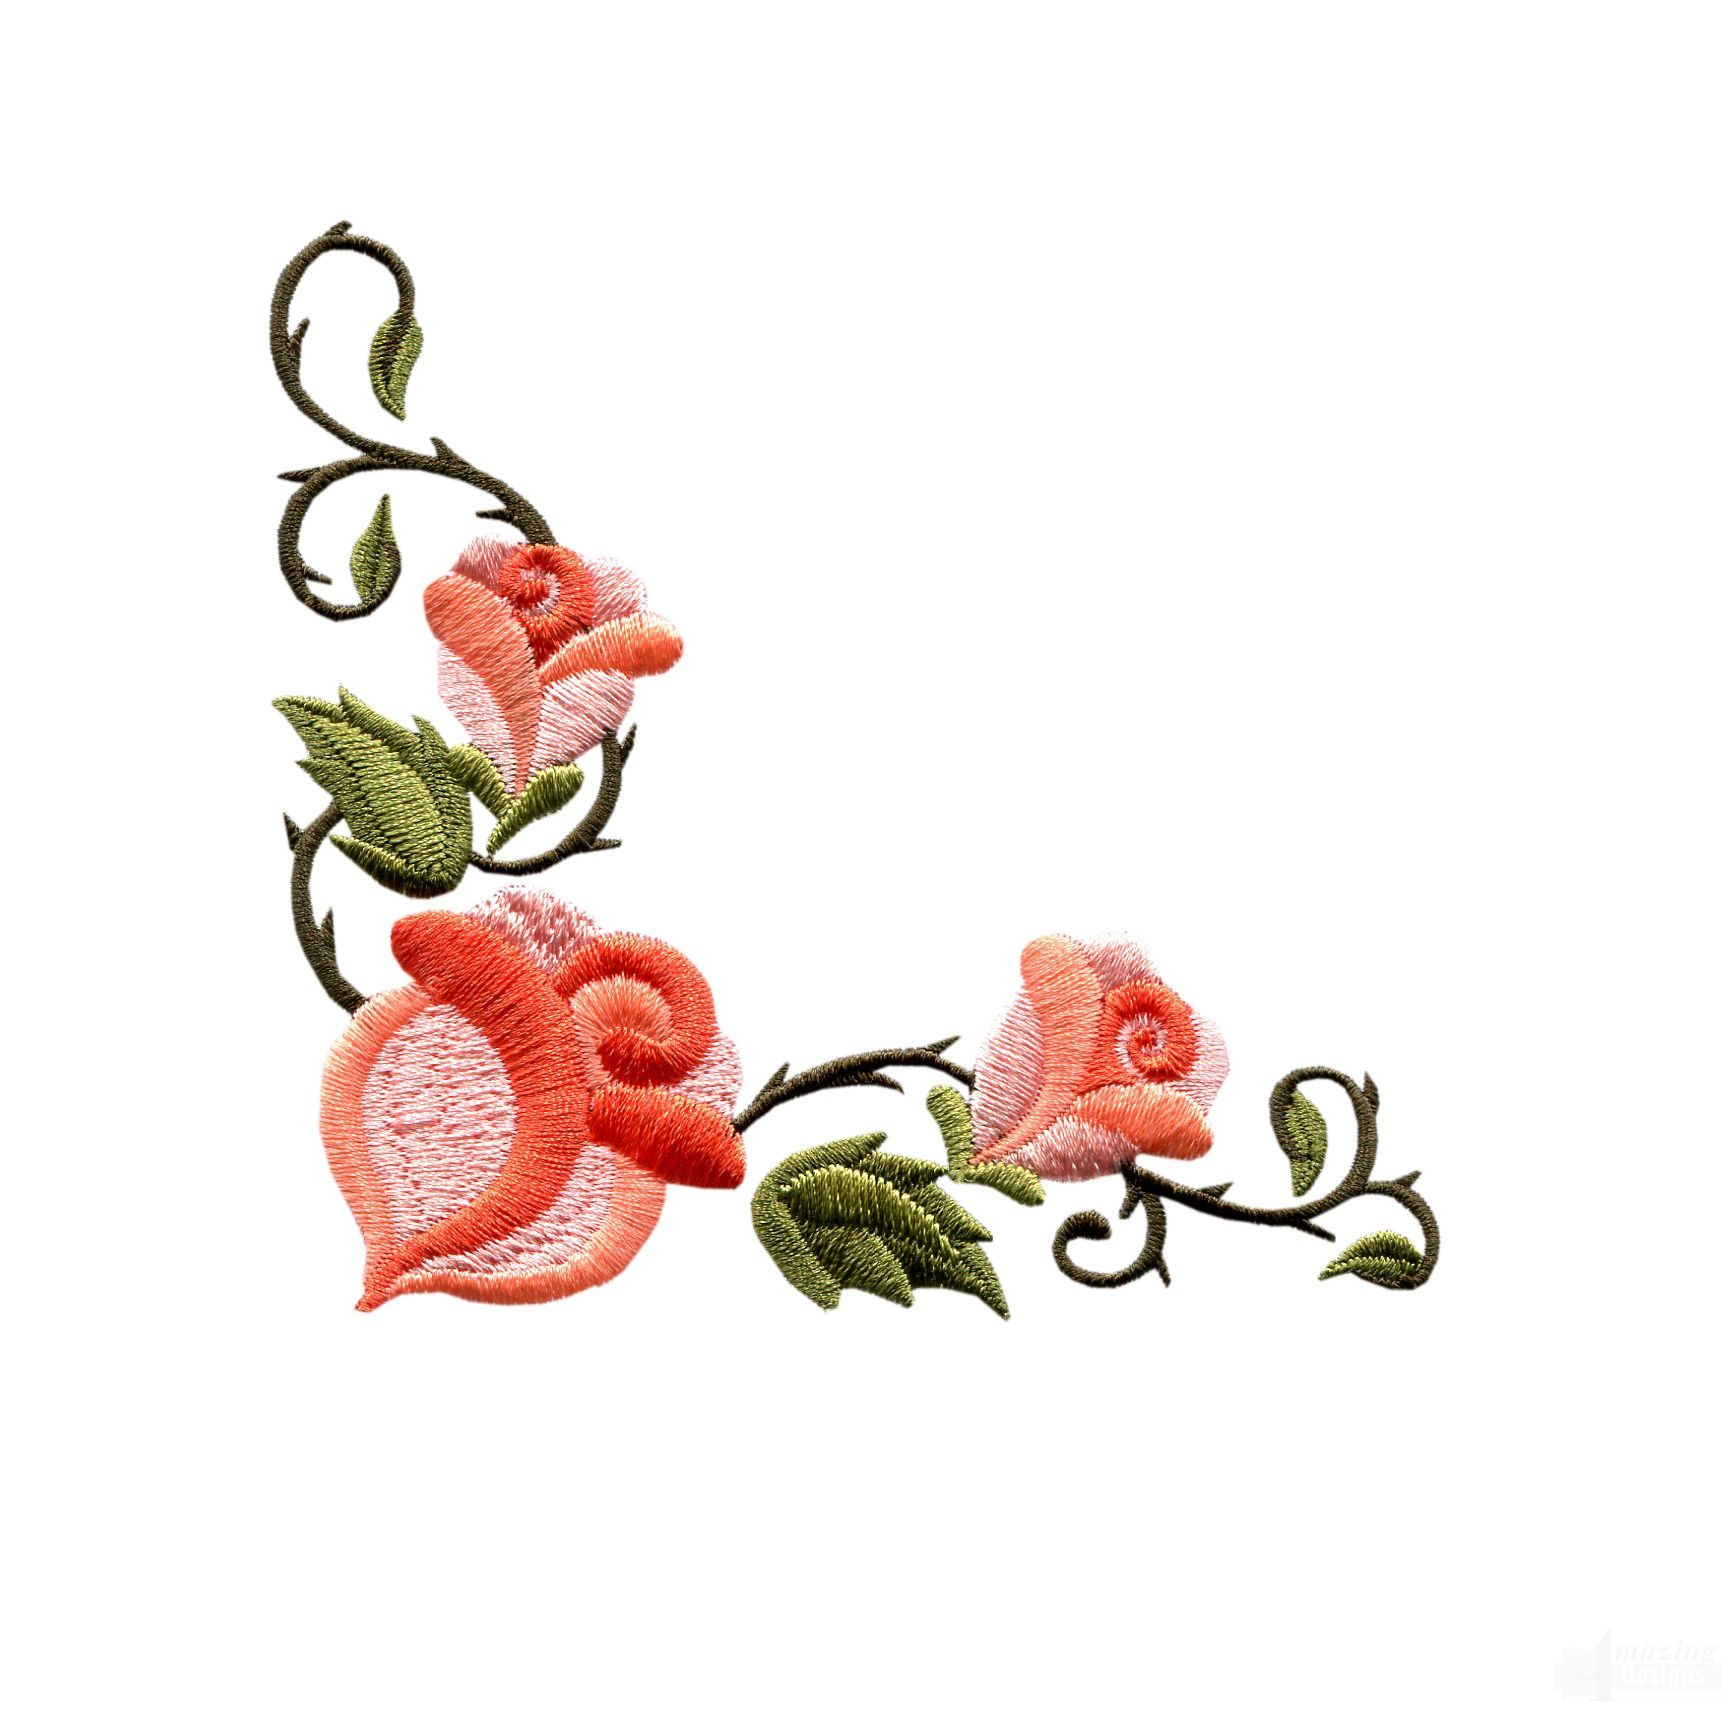 Small Flower Embroidery Designs Rose Floral Border 3 Embroidery